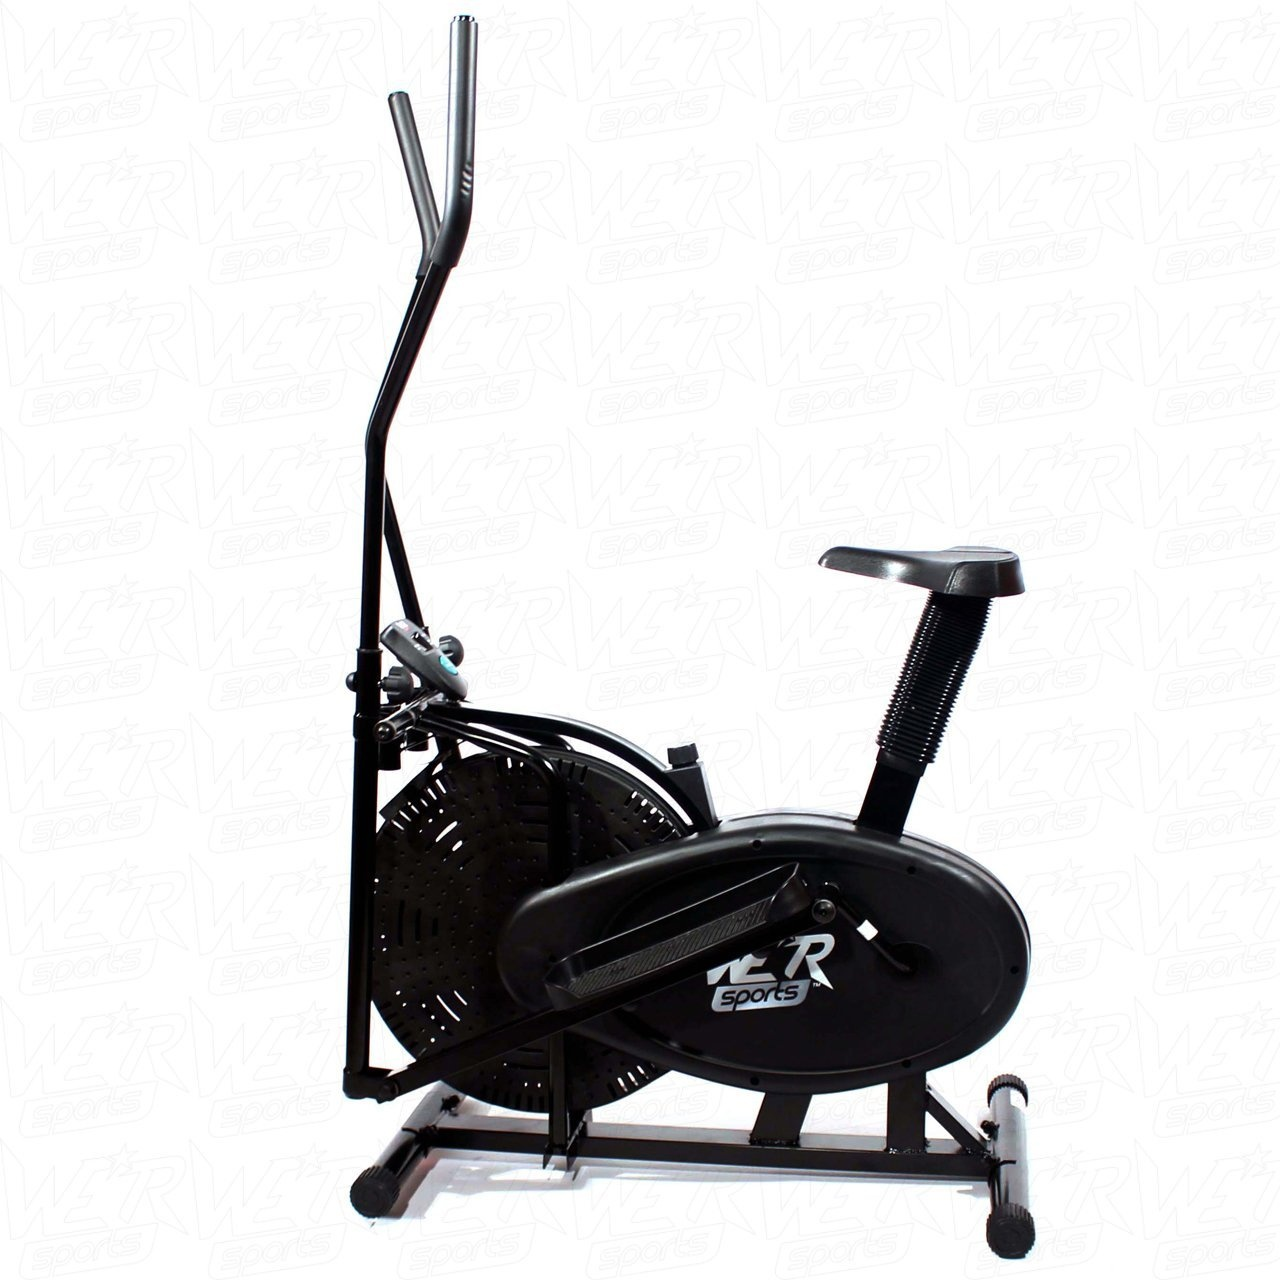 We R Sports 2-IN-1 ELLIPTICAL CROSS TRAINER /& EXERCISE BIKE FITNESS CARDIO WORKOUT WITH SEAT